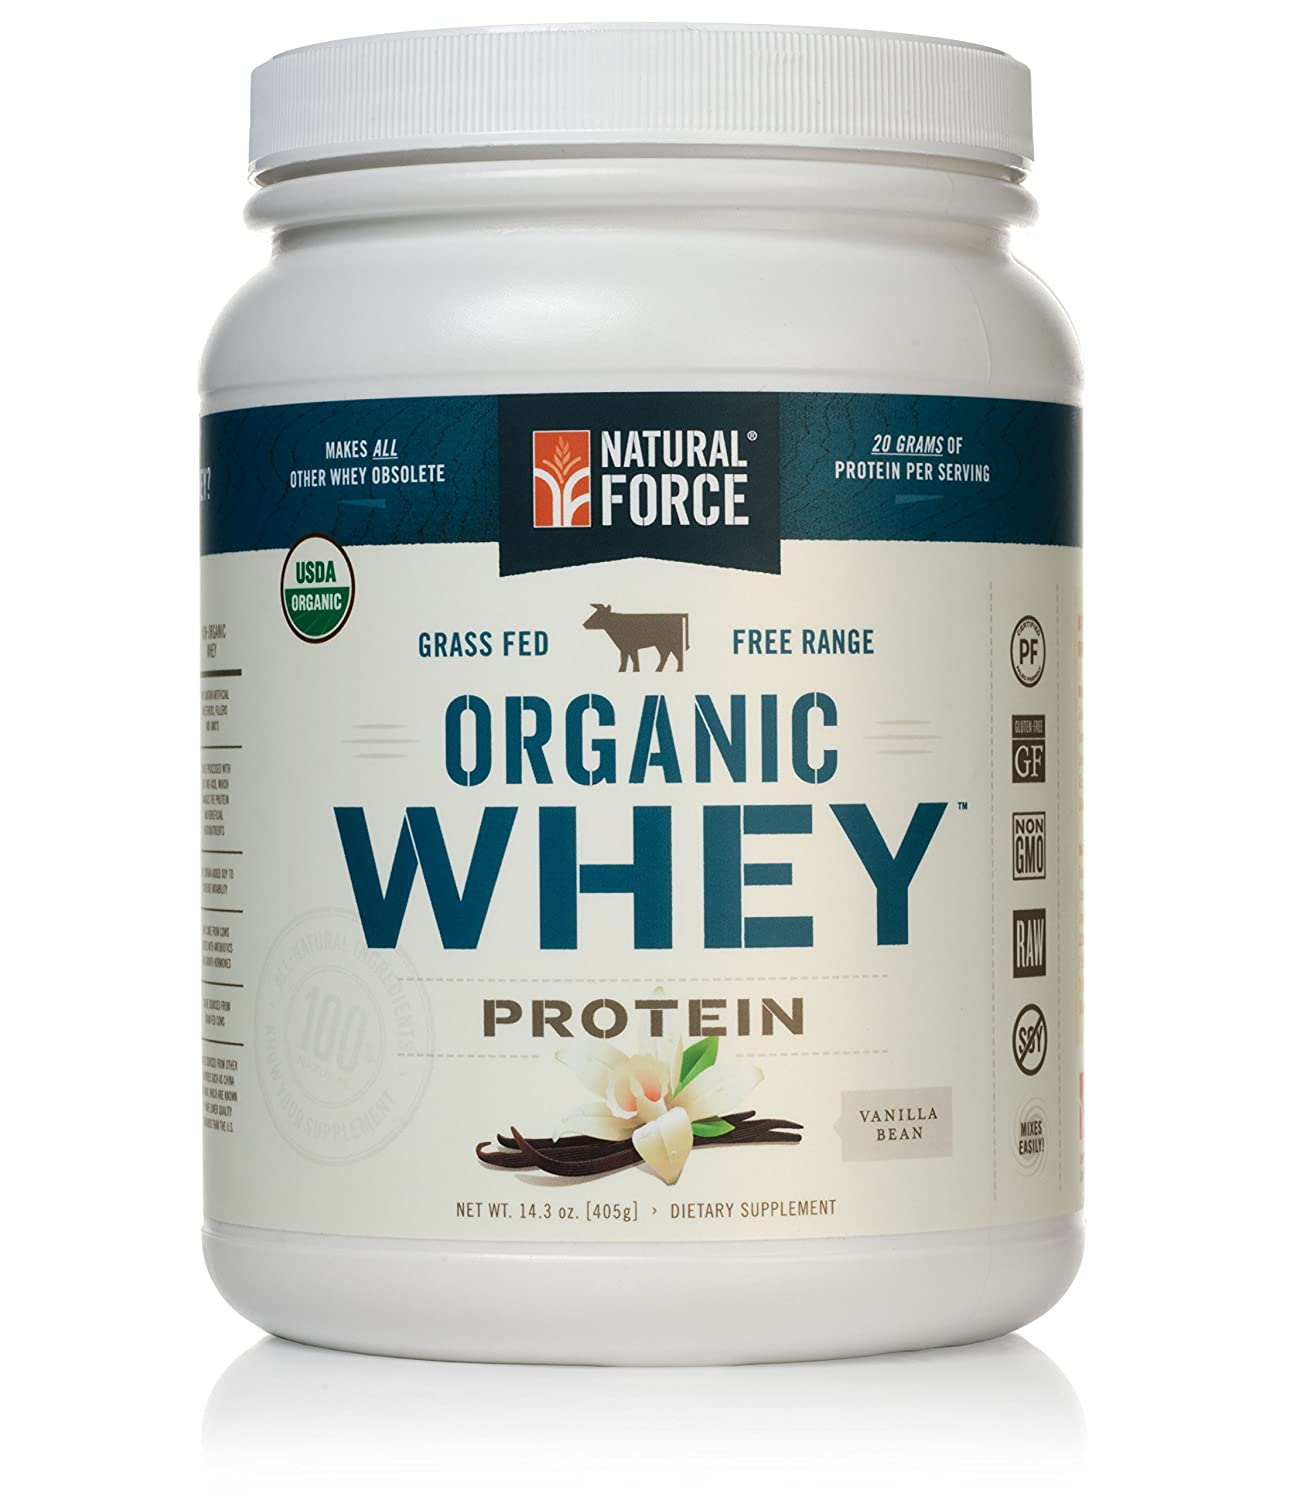 All Natural Organic Whey Protein Powder